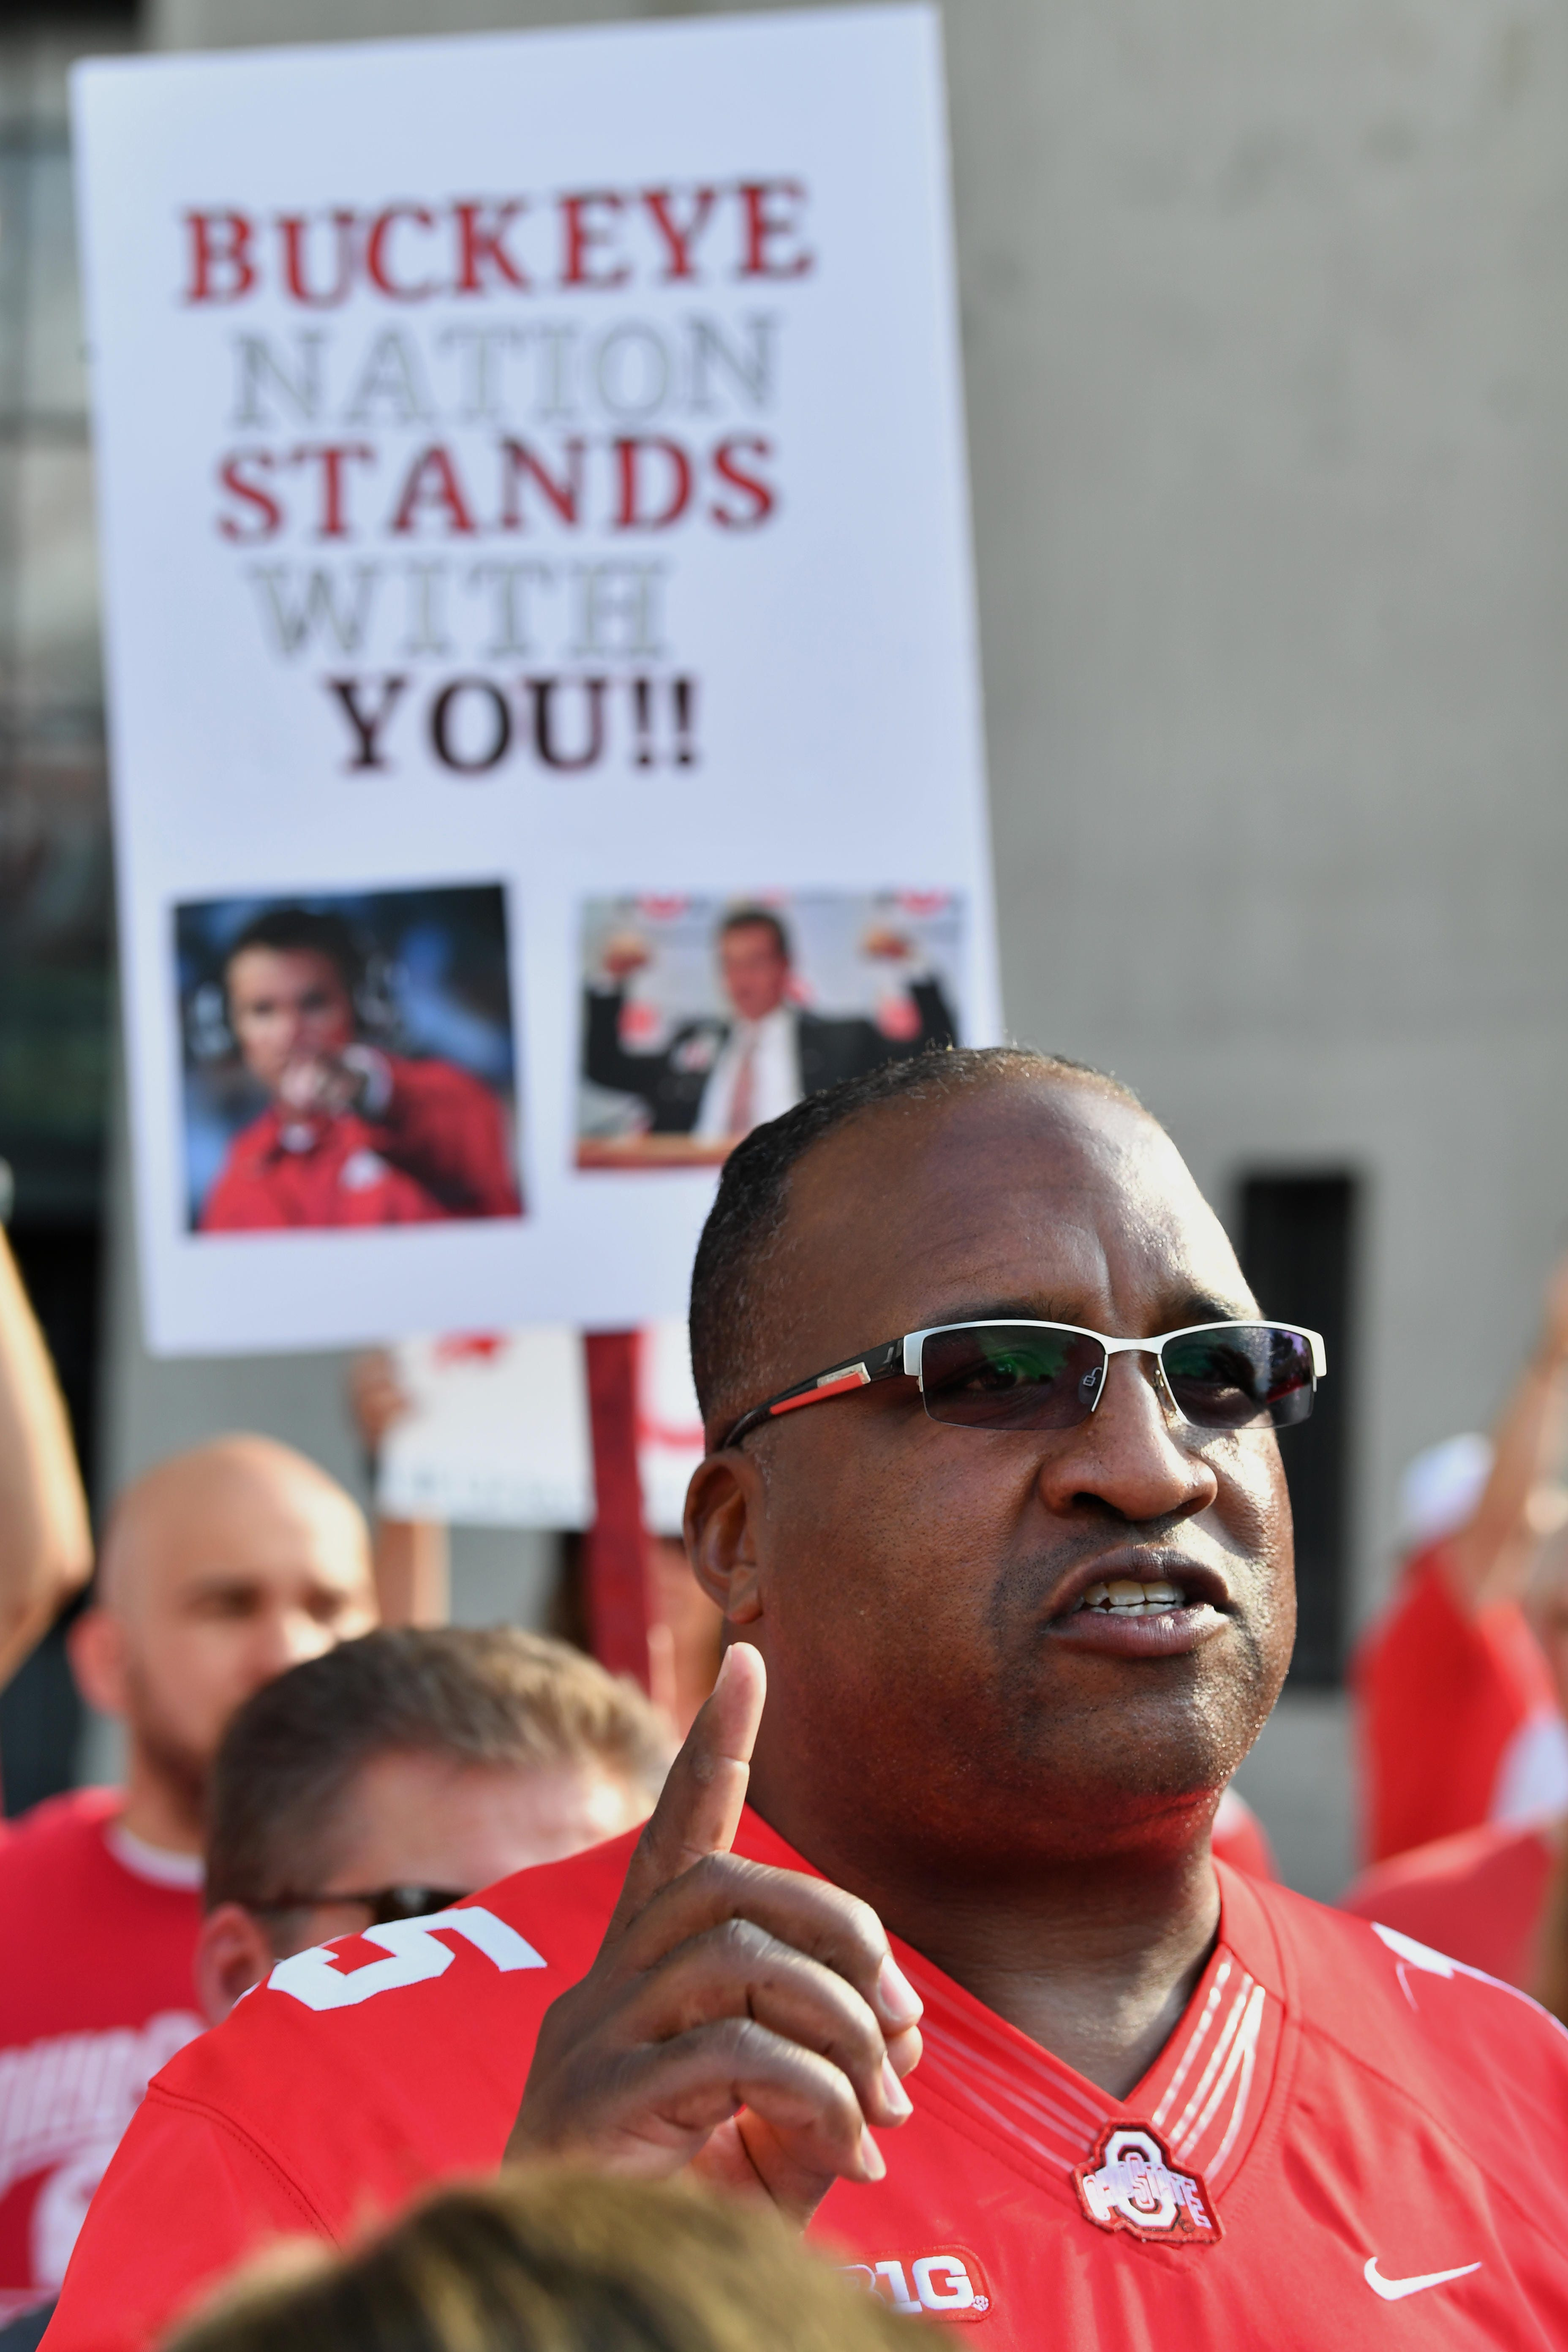 Ezekiel Elliott's father attends rally in support of Urban Meyer at Ohio State